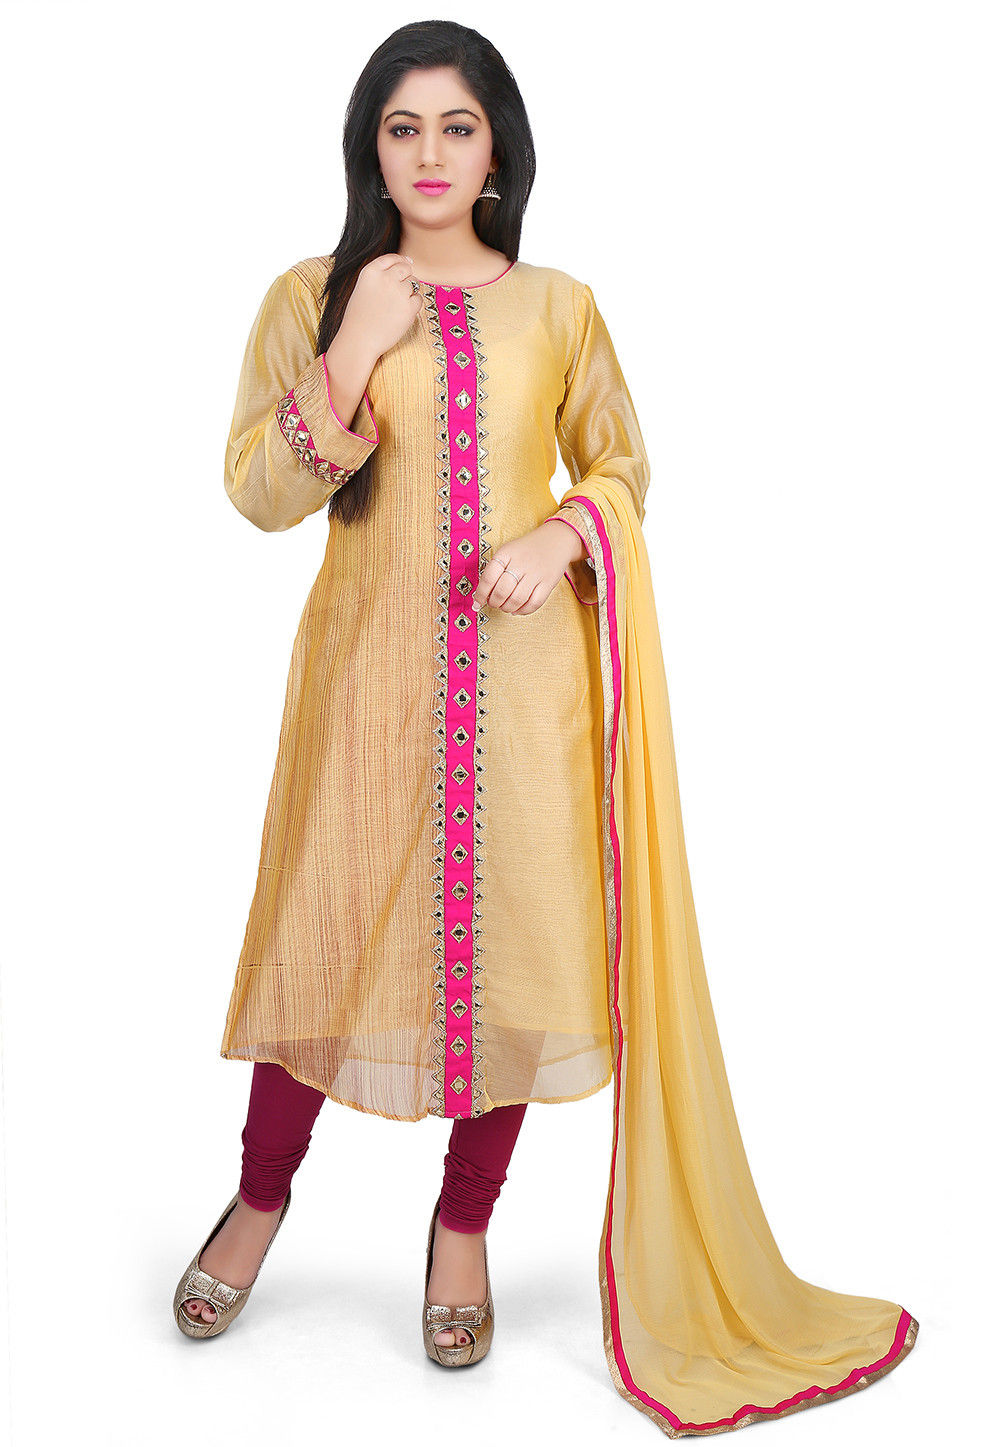 Contrast Placket Chanderi Cotton Straight Suit in Yellow